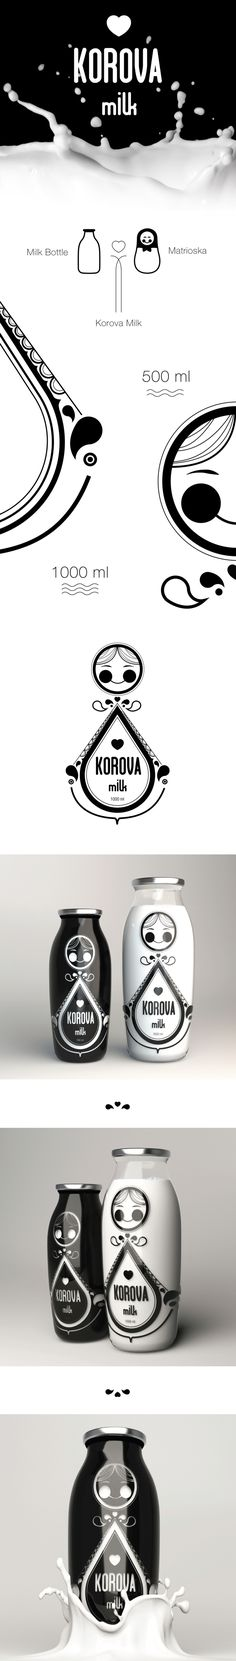 Korova Milk I just love this milk #identity #packaging don't you? PD